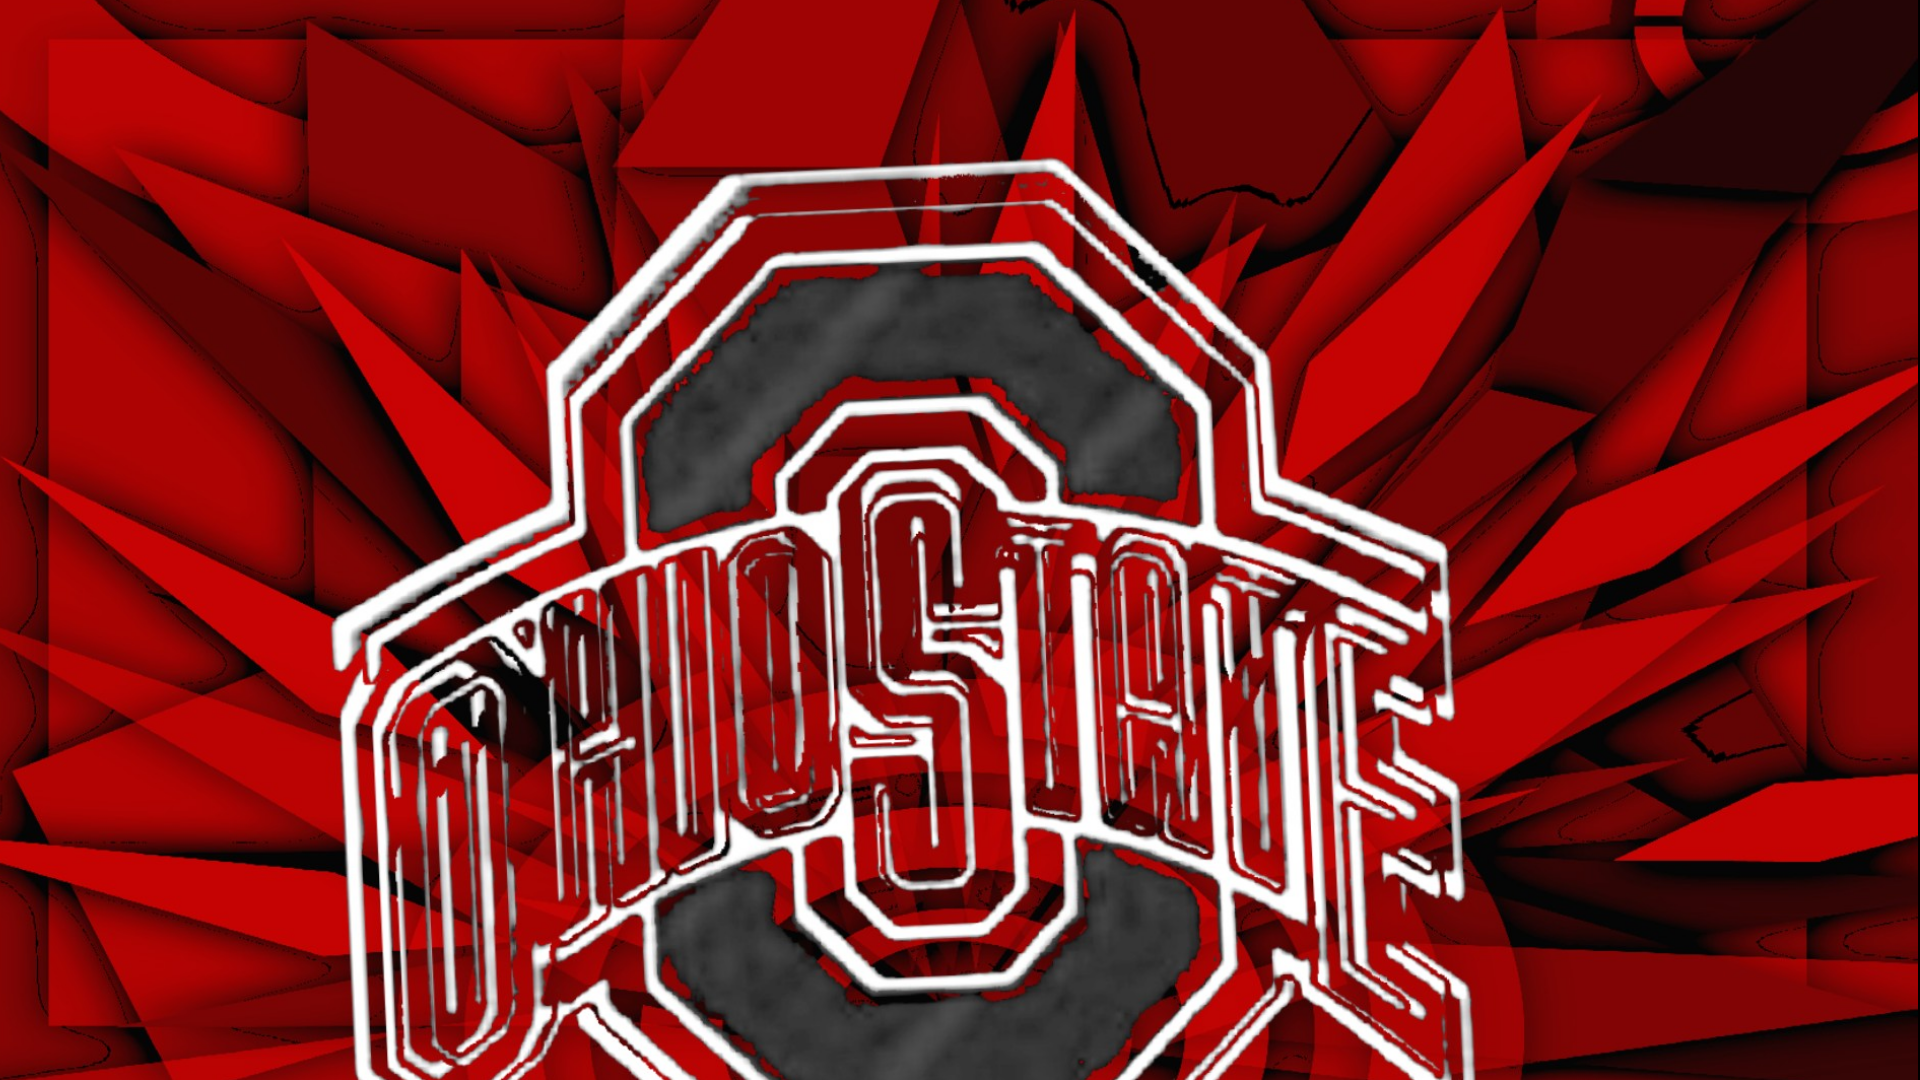 Ohio State Buckeyes OHIO STATE GRAY BLOCK O 1920x1080